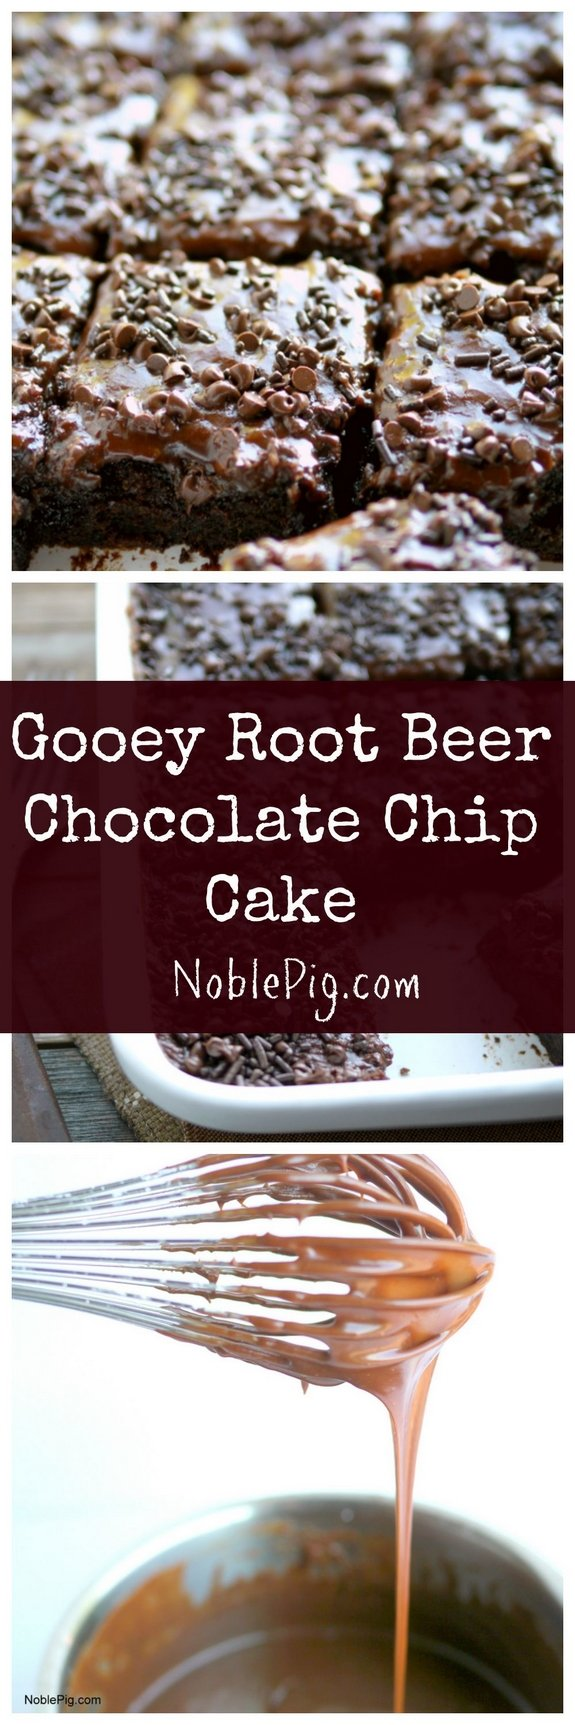 Gooey Root Beer Chocolate Chip Cake from NoblePig